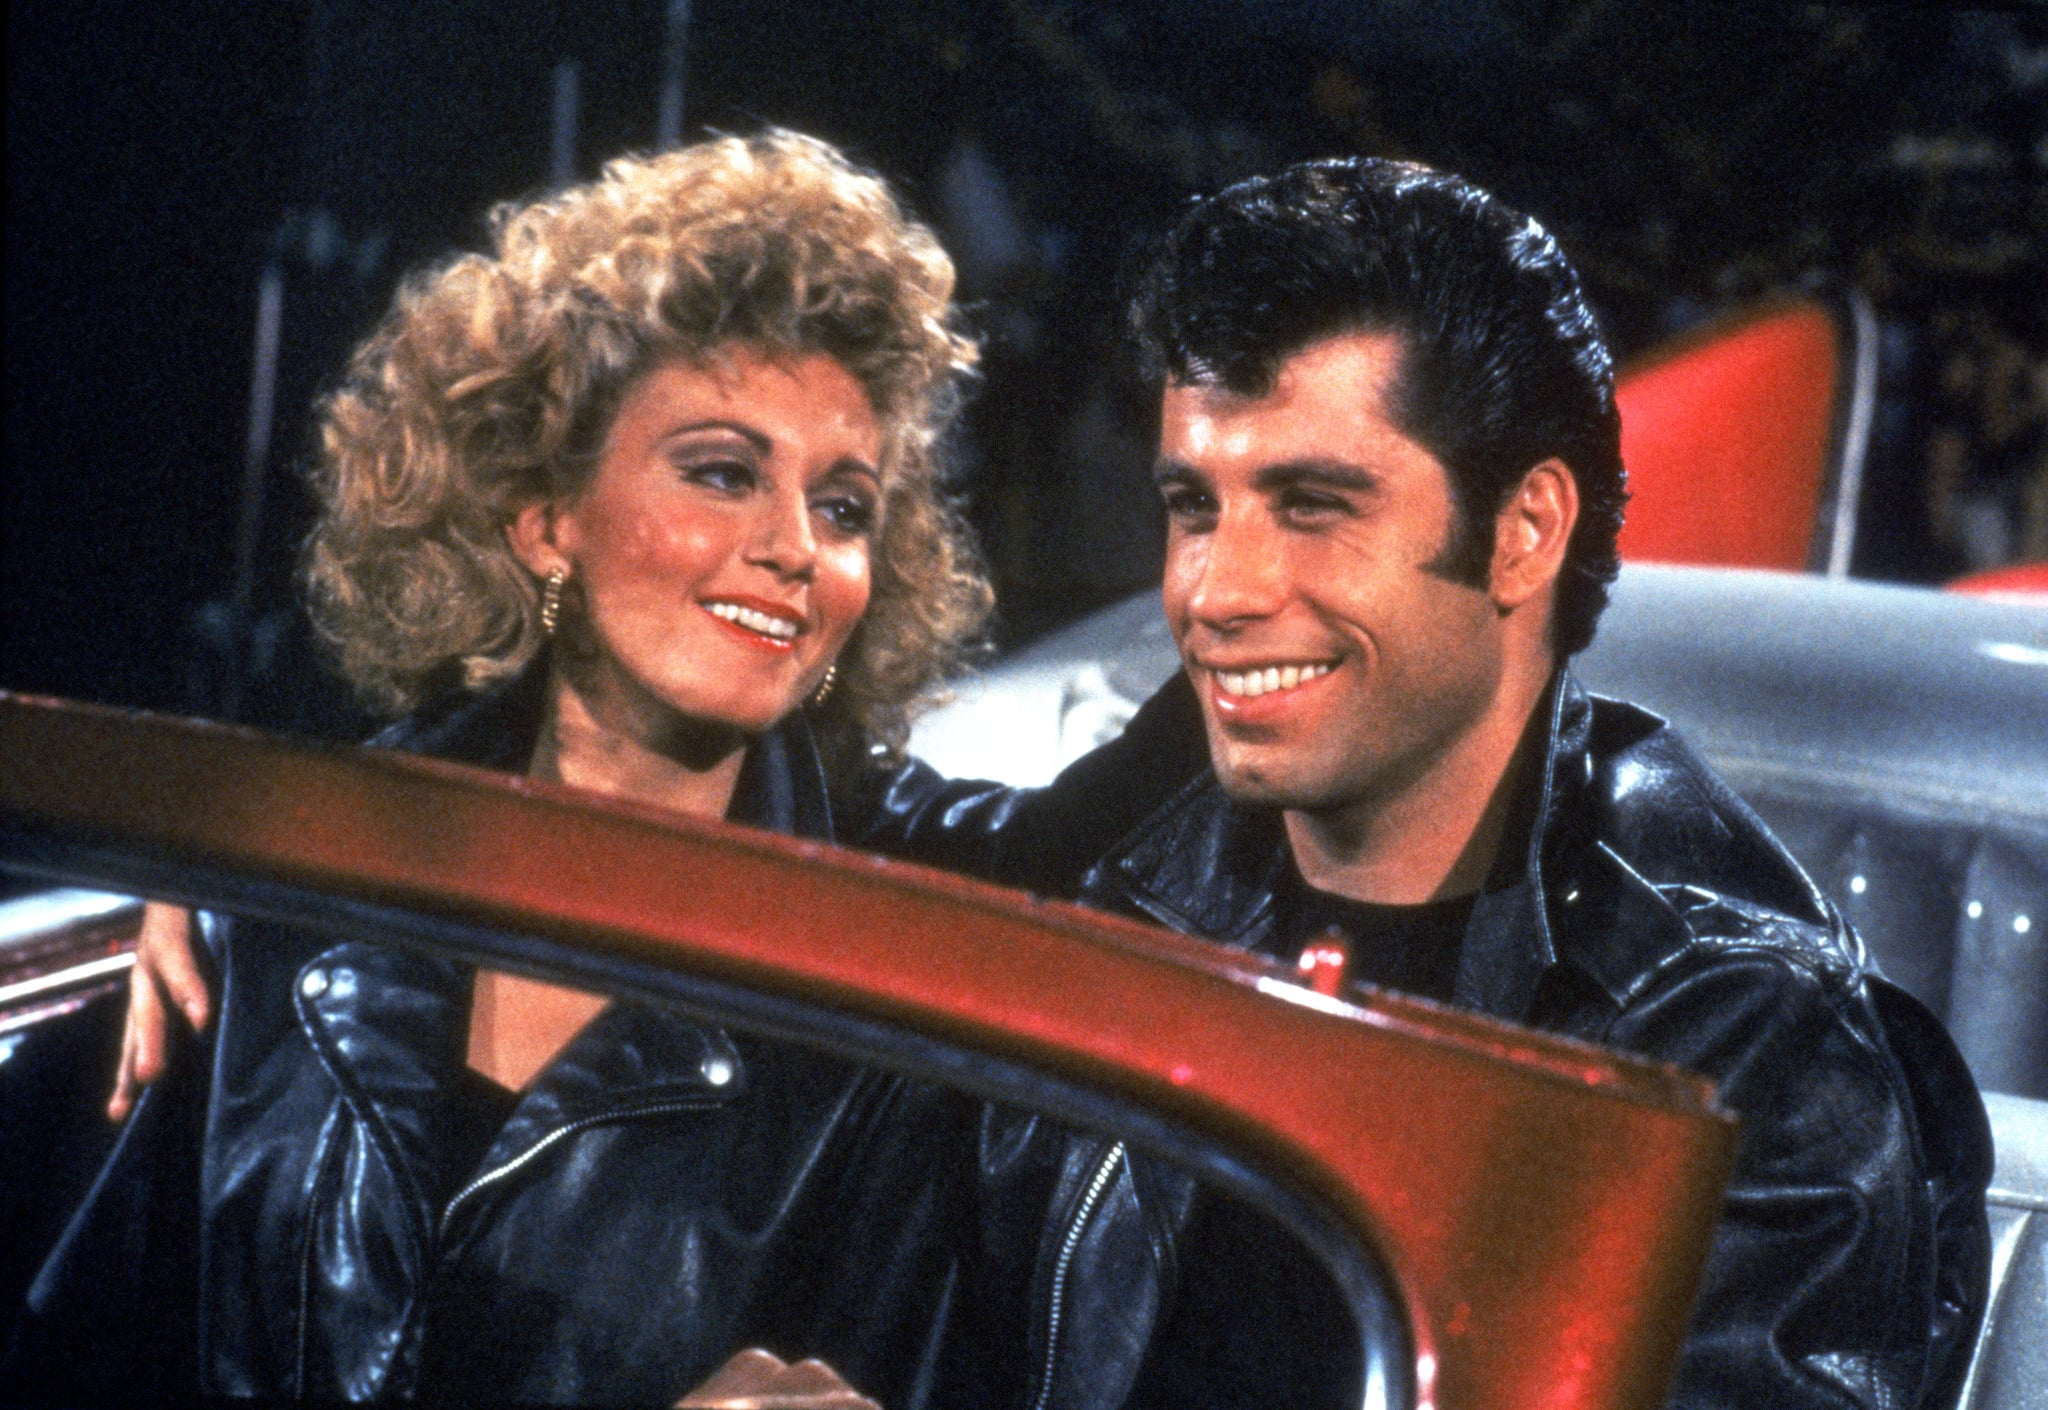 GREASE, Olivia Newton-John, John Travolta, 1978, (c) Paramount/courtesy Everett Collection